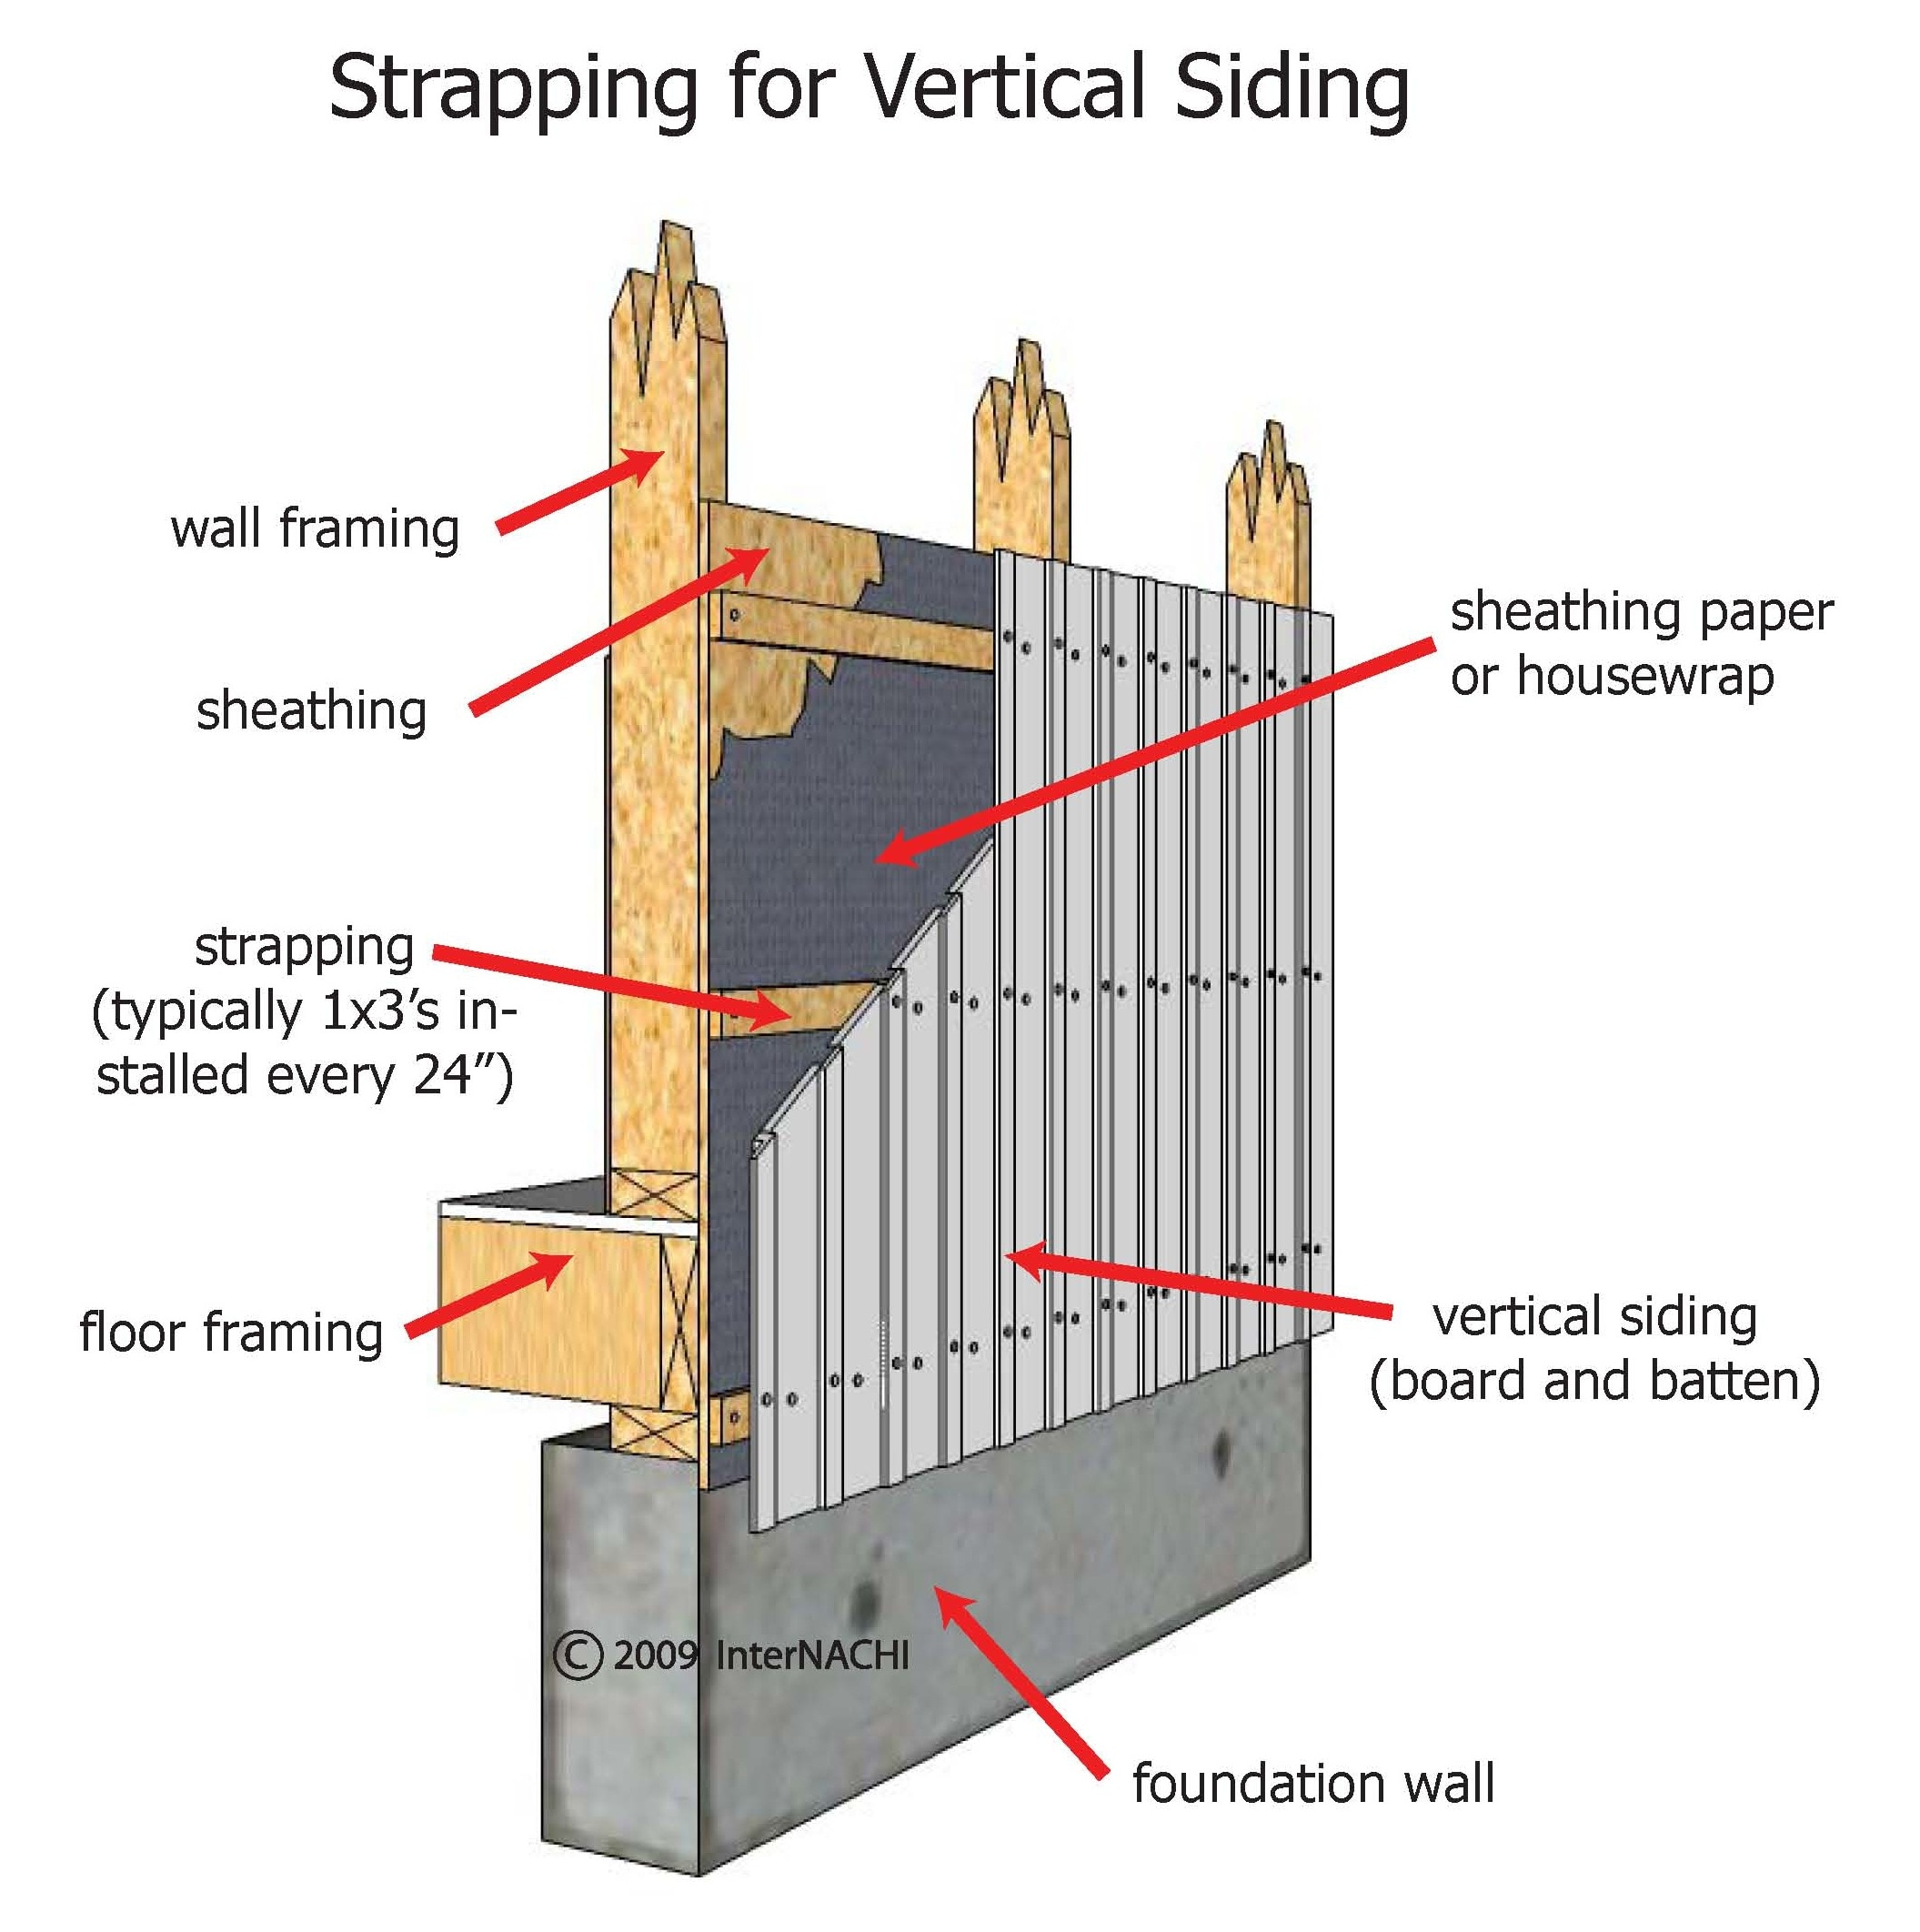 Strapping for vertical siding.